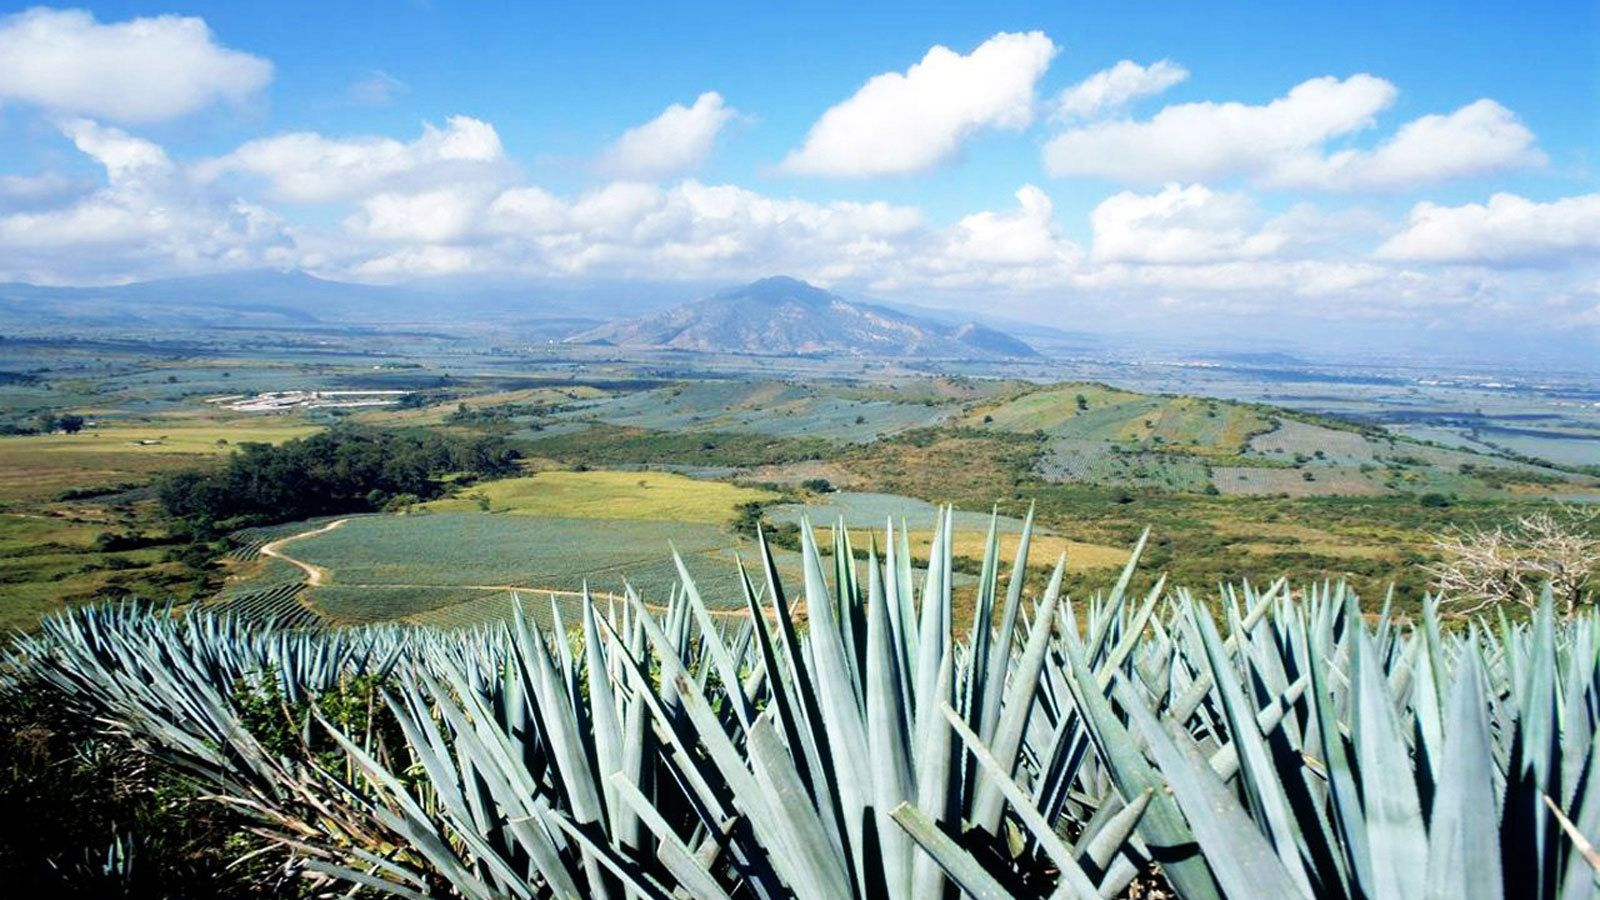 Row of agave with fields and mountains in the distance